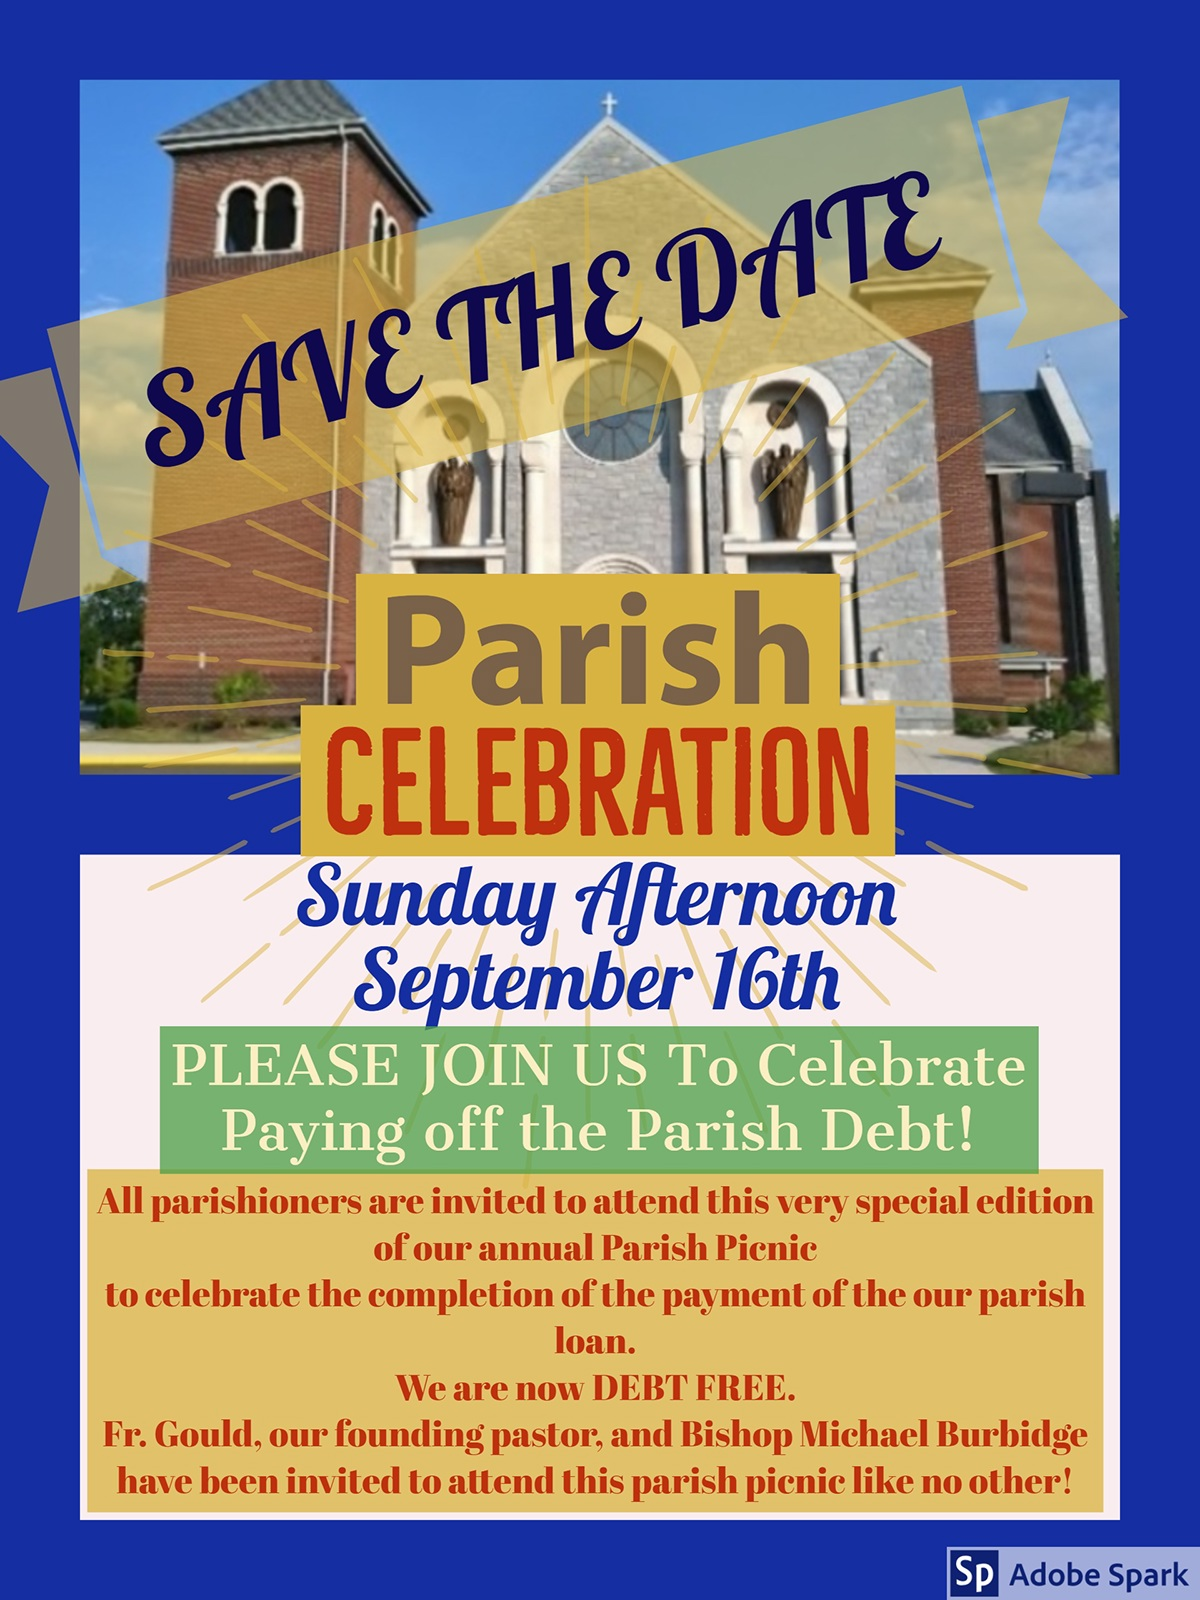 Country Music Festival All parishioners are invited to attend this very special edition  of our annual Parish Picnic  to celebrate the completion of the payment of the our parish loan.  We are now DEBT FREE.   Fr. Gould, our founding pastor, and Bishop Michael Burbidge have been invited to attend this parish picnic like no other!  SAVE THE DATE Parish Celebration PLEASE JOIN US To Celebrate Paying off the Parish Debt! Sunday Afternoon September 16th